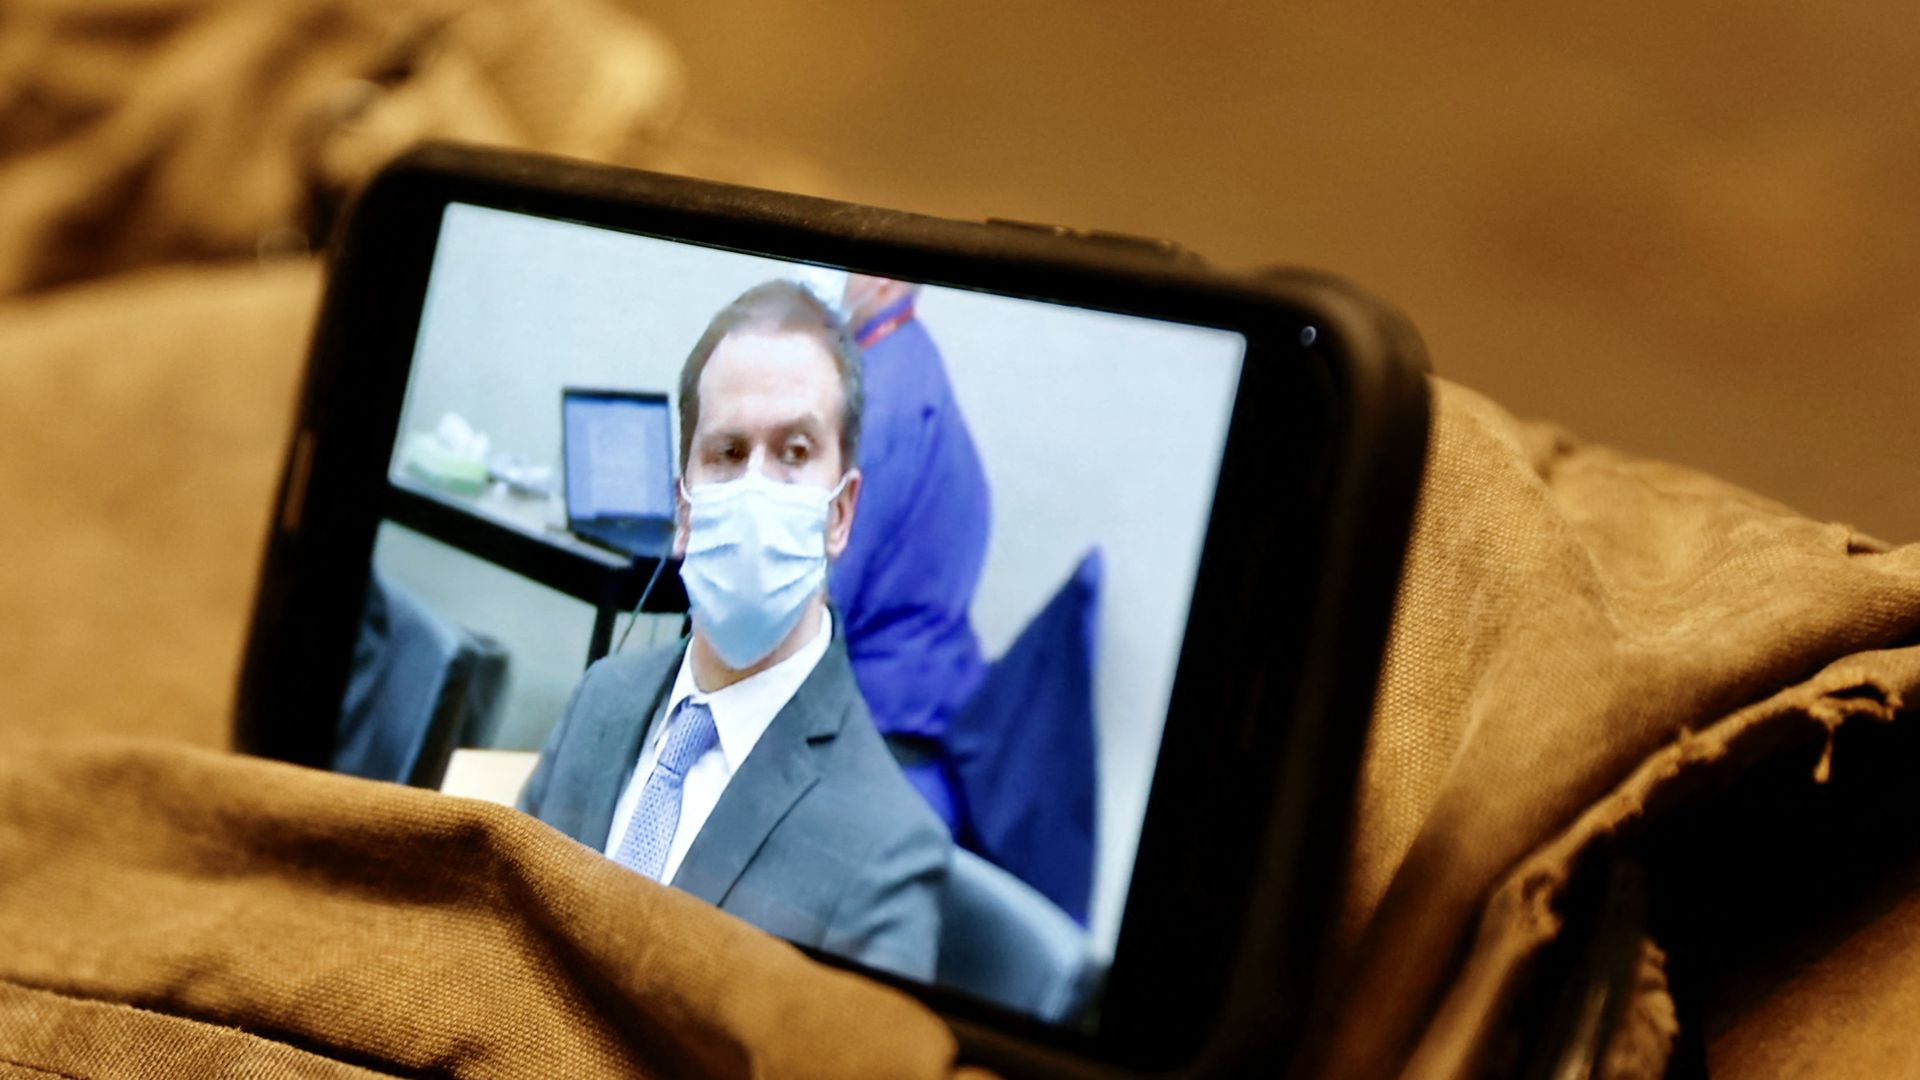 A journalist watches their mobile phone showing Derek Chauvin as the verdict in his trial over the death of George Floyd is announced in Minneapolis, Minnesota on April 20, 2021